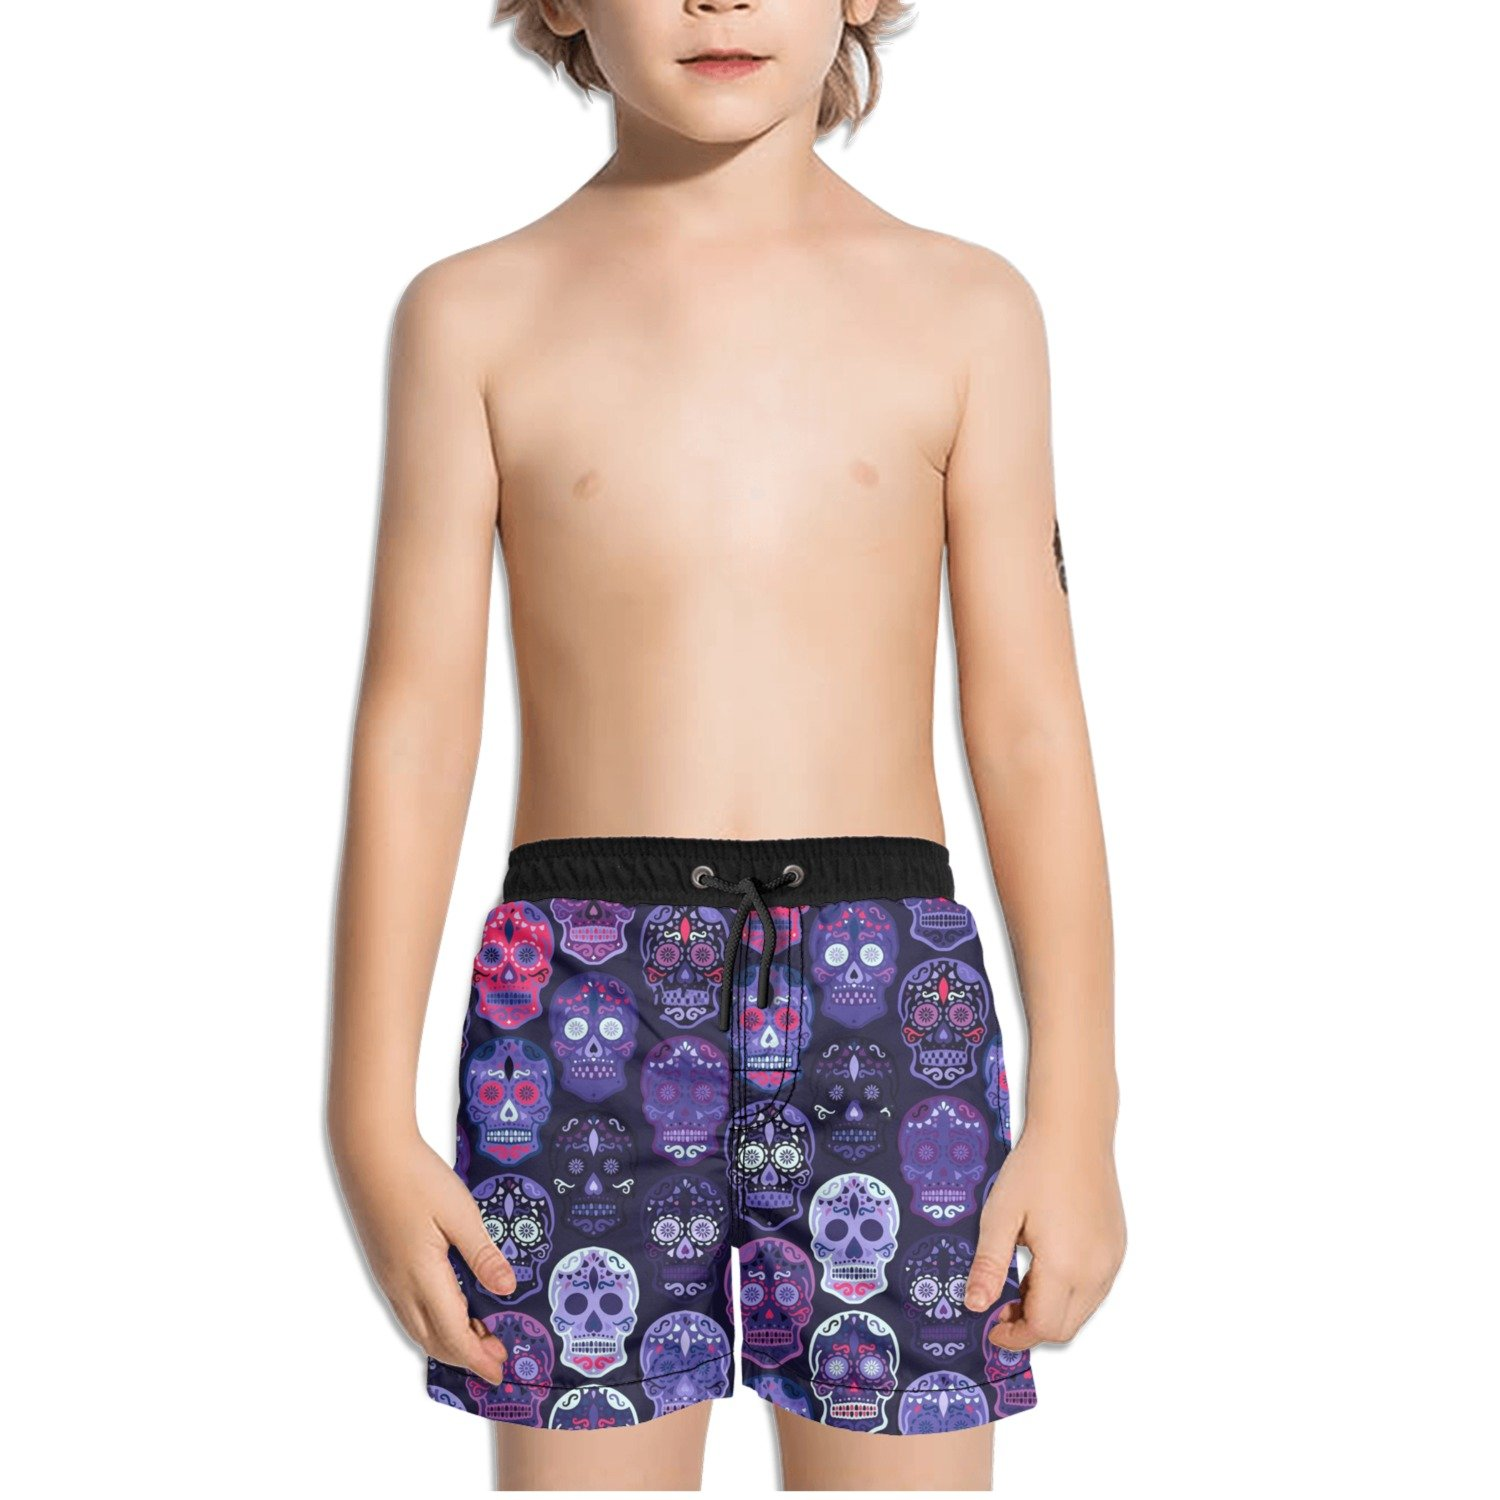 FullBo Purple Flower Skulls Little Boys Short Swim Trunks Quick Dry Beach Shorts